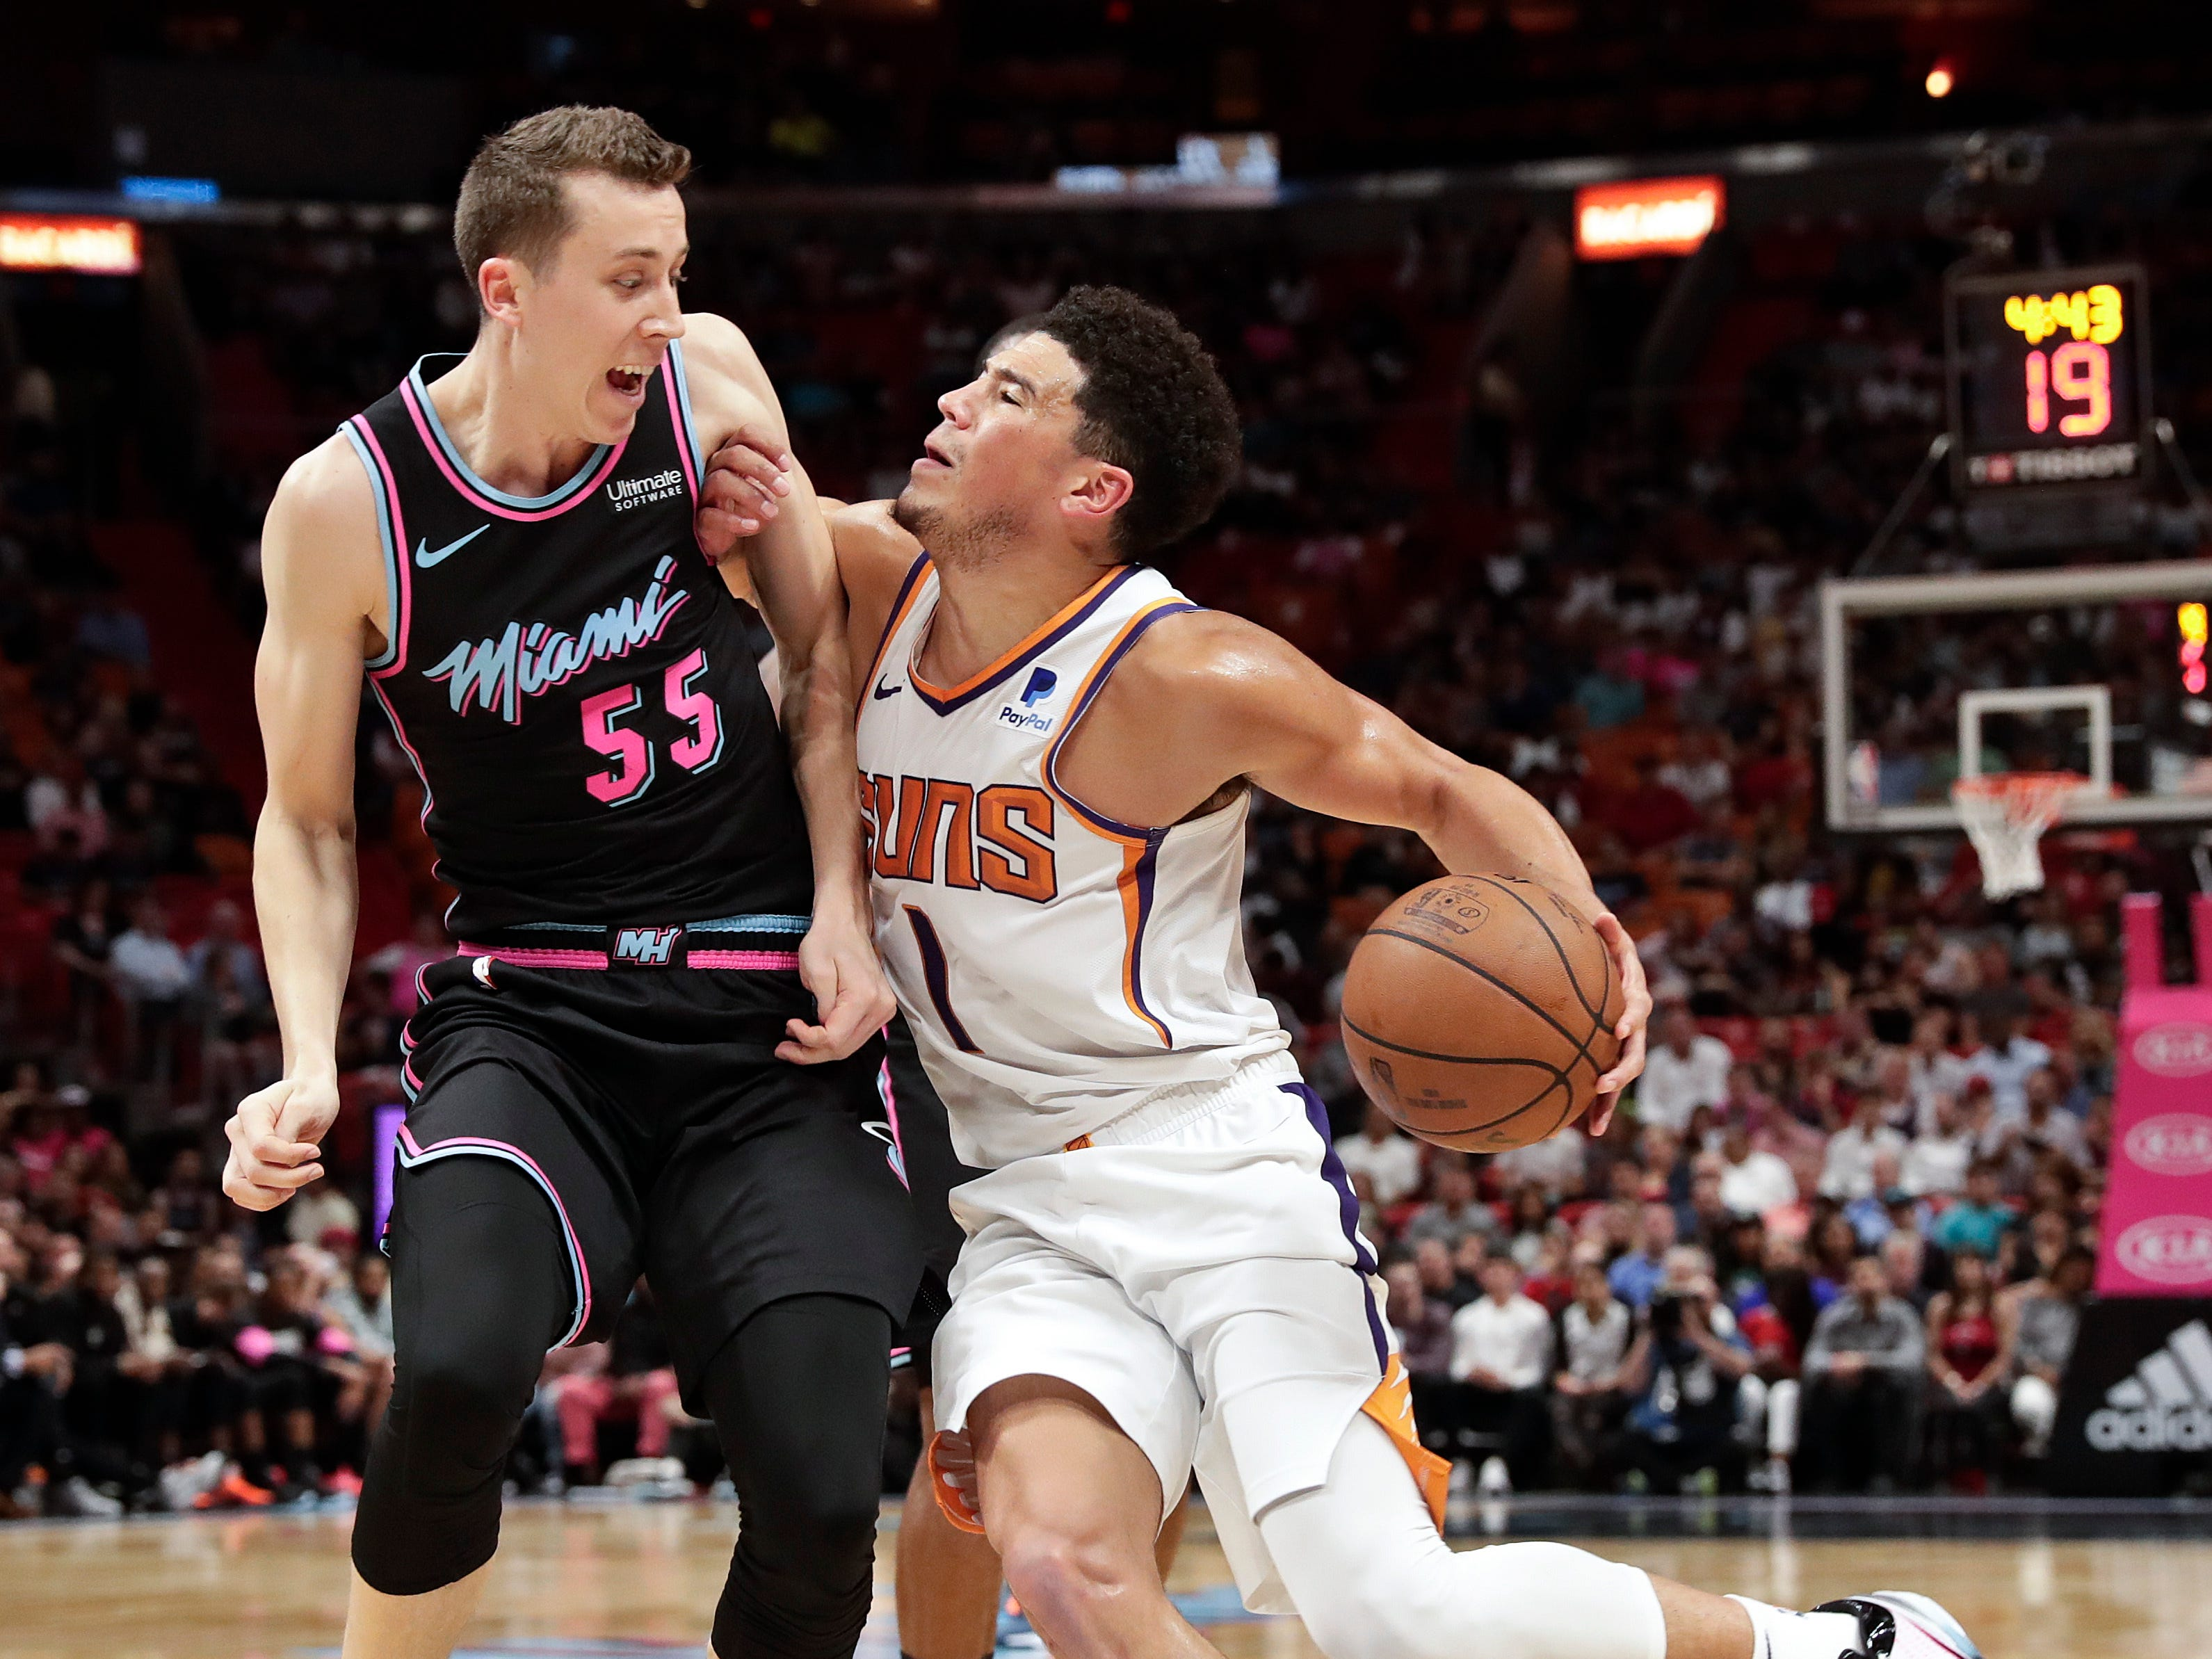 Miami Heat forward Duncan Robinson (55) fouls Phoenix Suns guard Devin Booker (1) during the first half of an NBA basketball game on Monday, Feb. 25, 2019, in Miami. (AP Photo/Brynn Anderson)